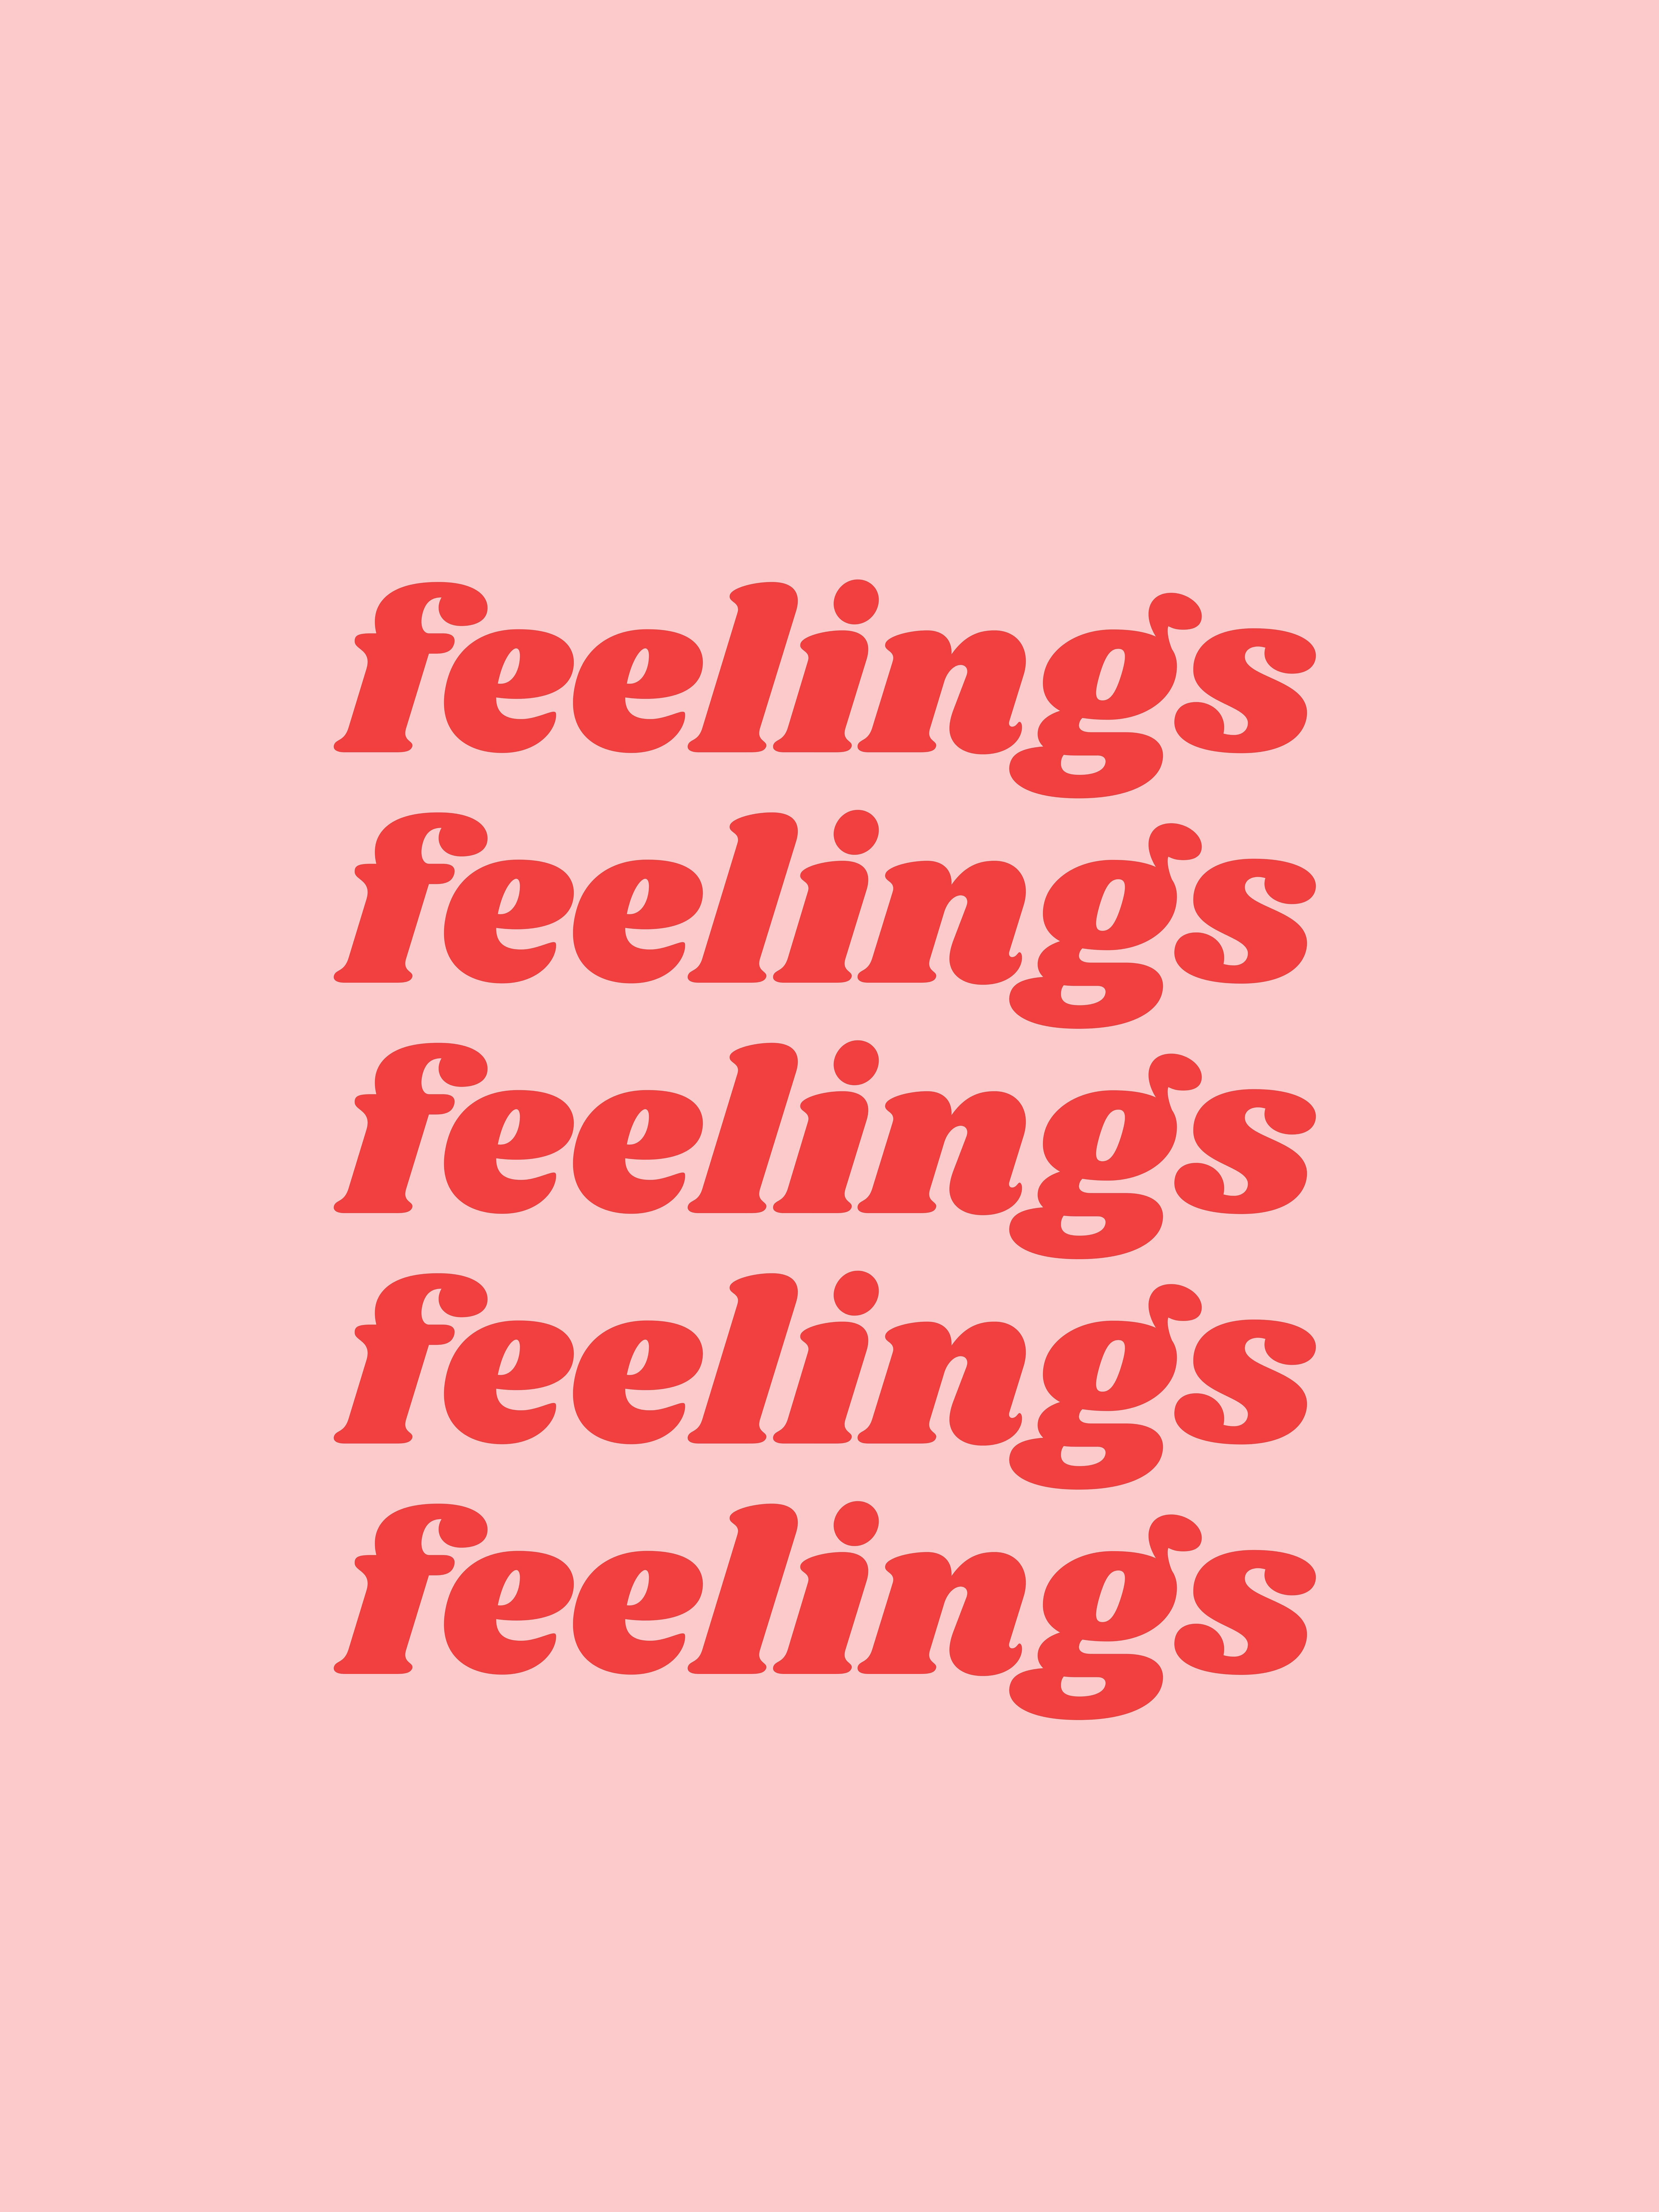 Latest Funny Aesthetic feelings Art Print by typutopia feelings quote  #feelings #pink #red #aesthetic #Tumblr #quote #quotes #happinessphilosophyquotes 11